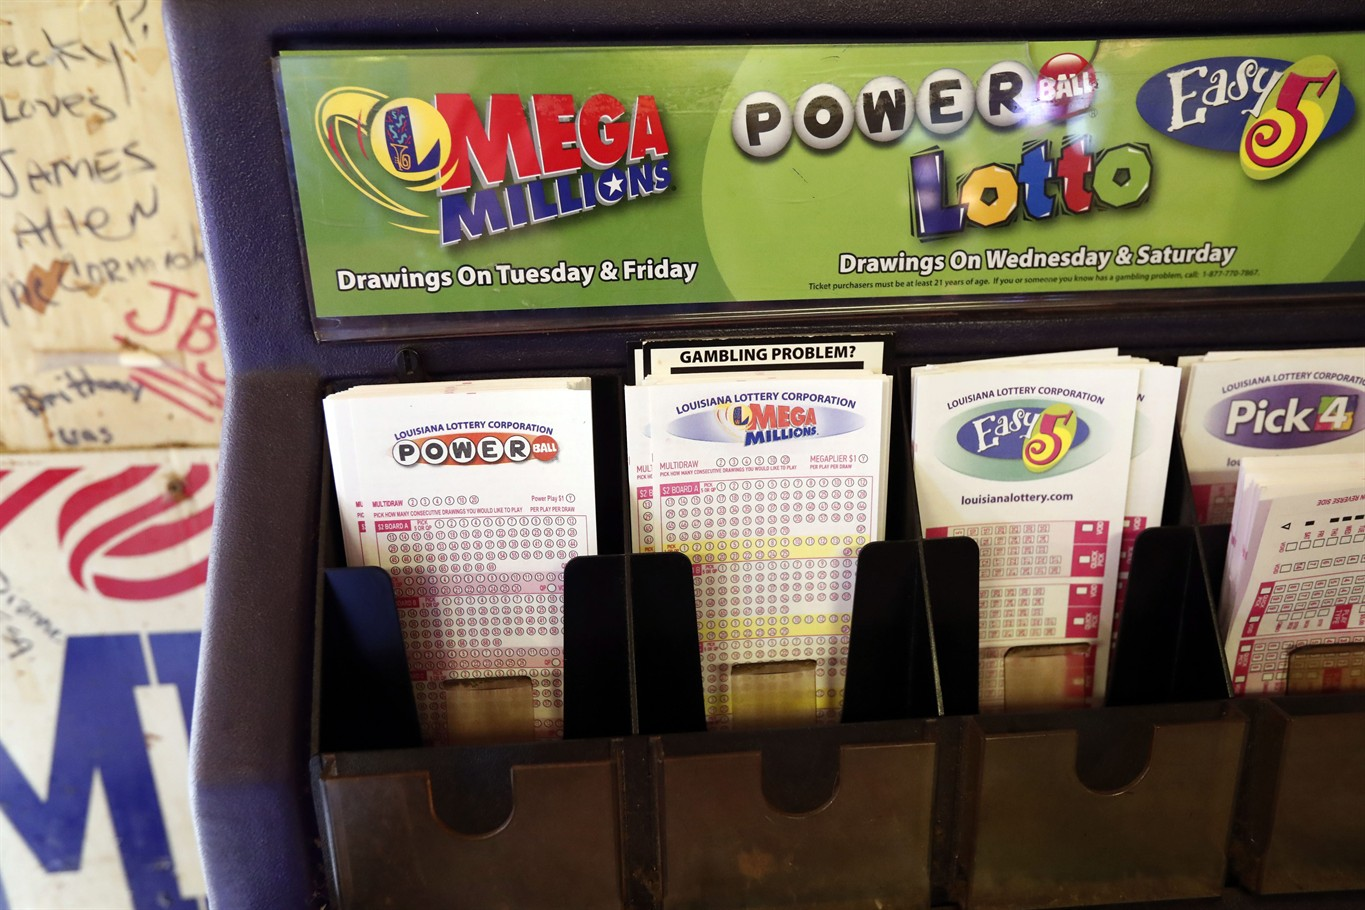 Winning tickets from Powerball drawing sold in Oklahoma